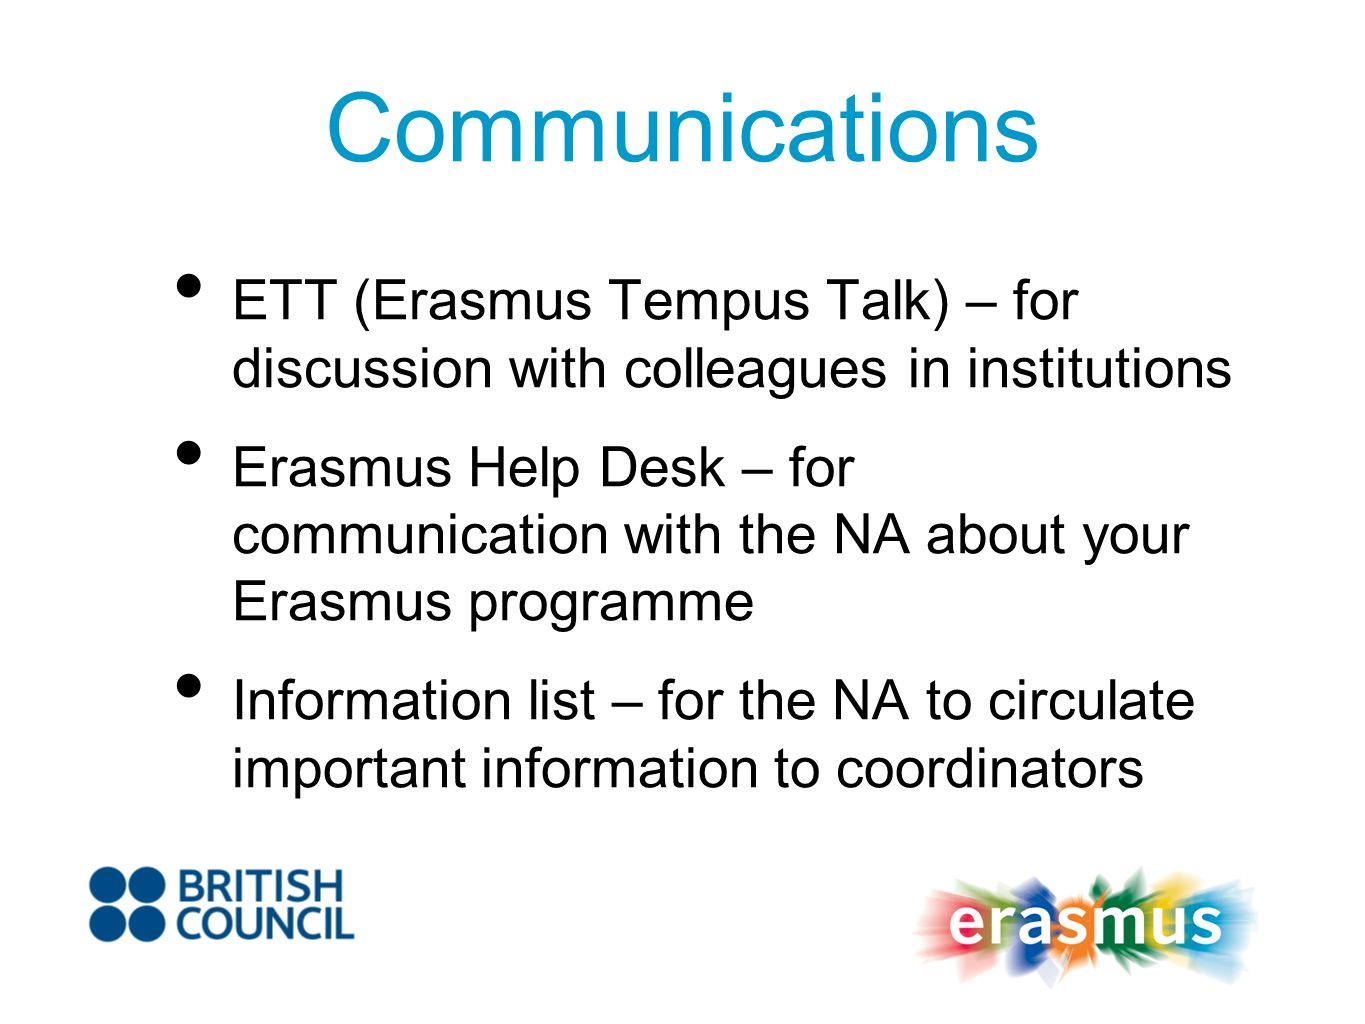 Communications ETT (Erasmus Tempus Talk) – for discussion with colleagues in institutions Erasmus Help Desk – for communication with the NA about your Erasmus programme Information list – for the NA to circulate important information to coordinators